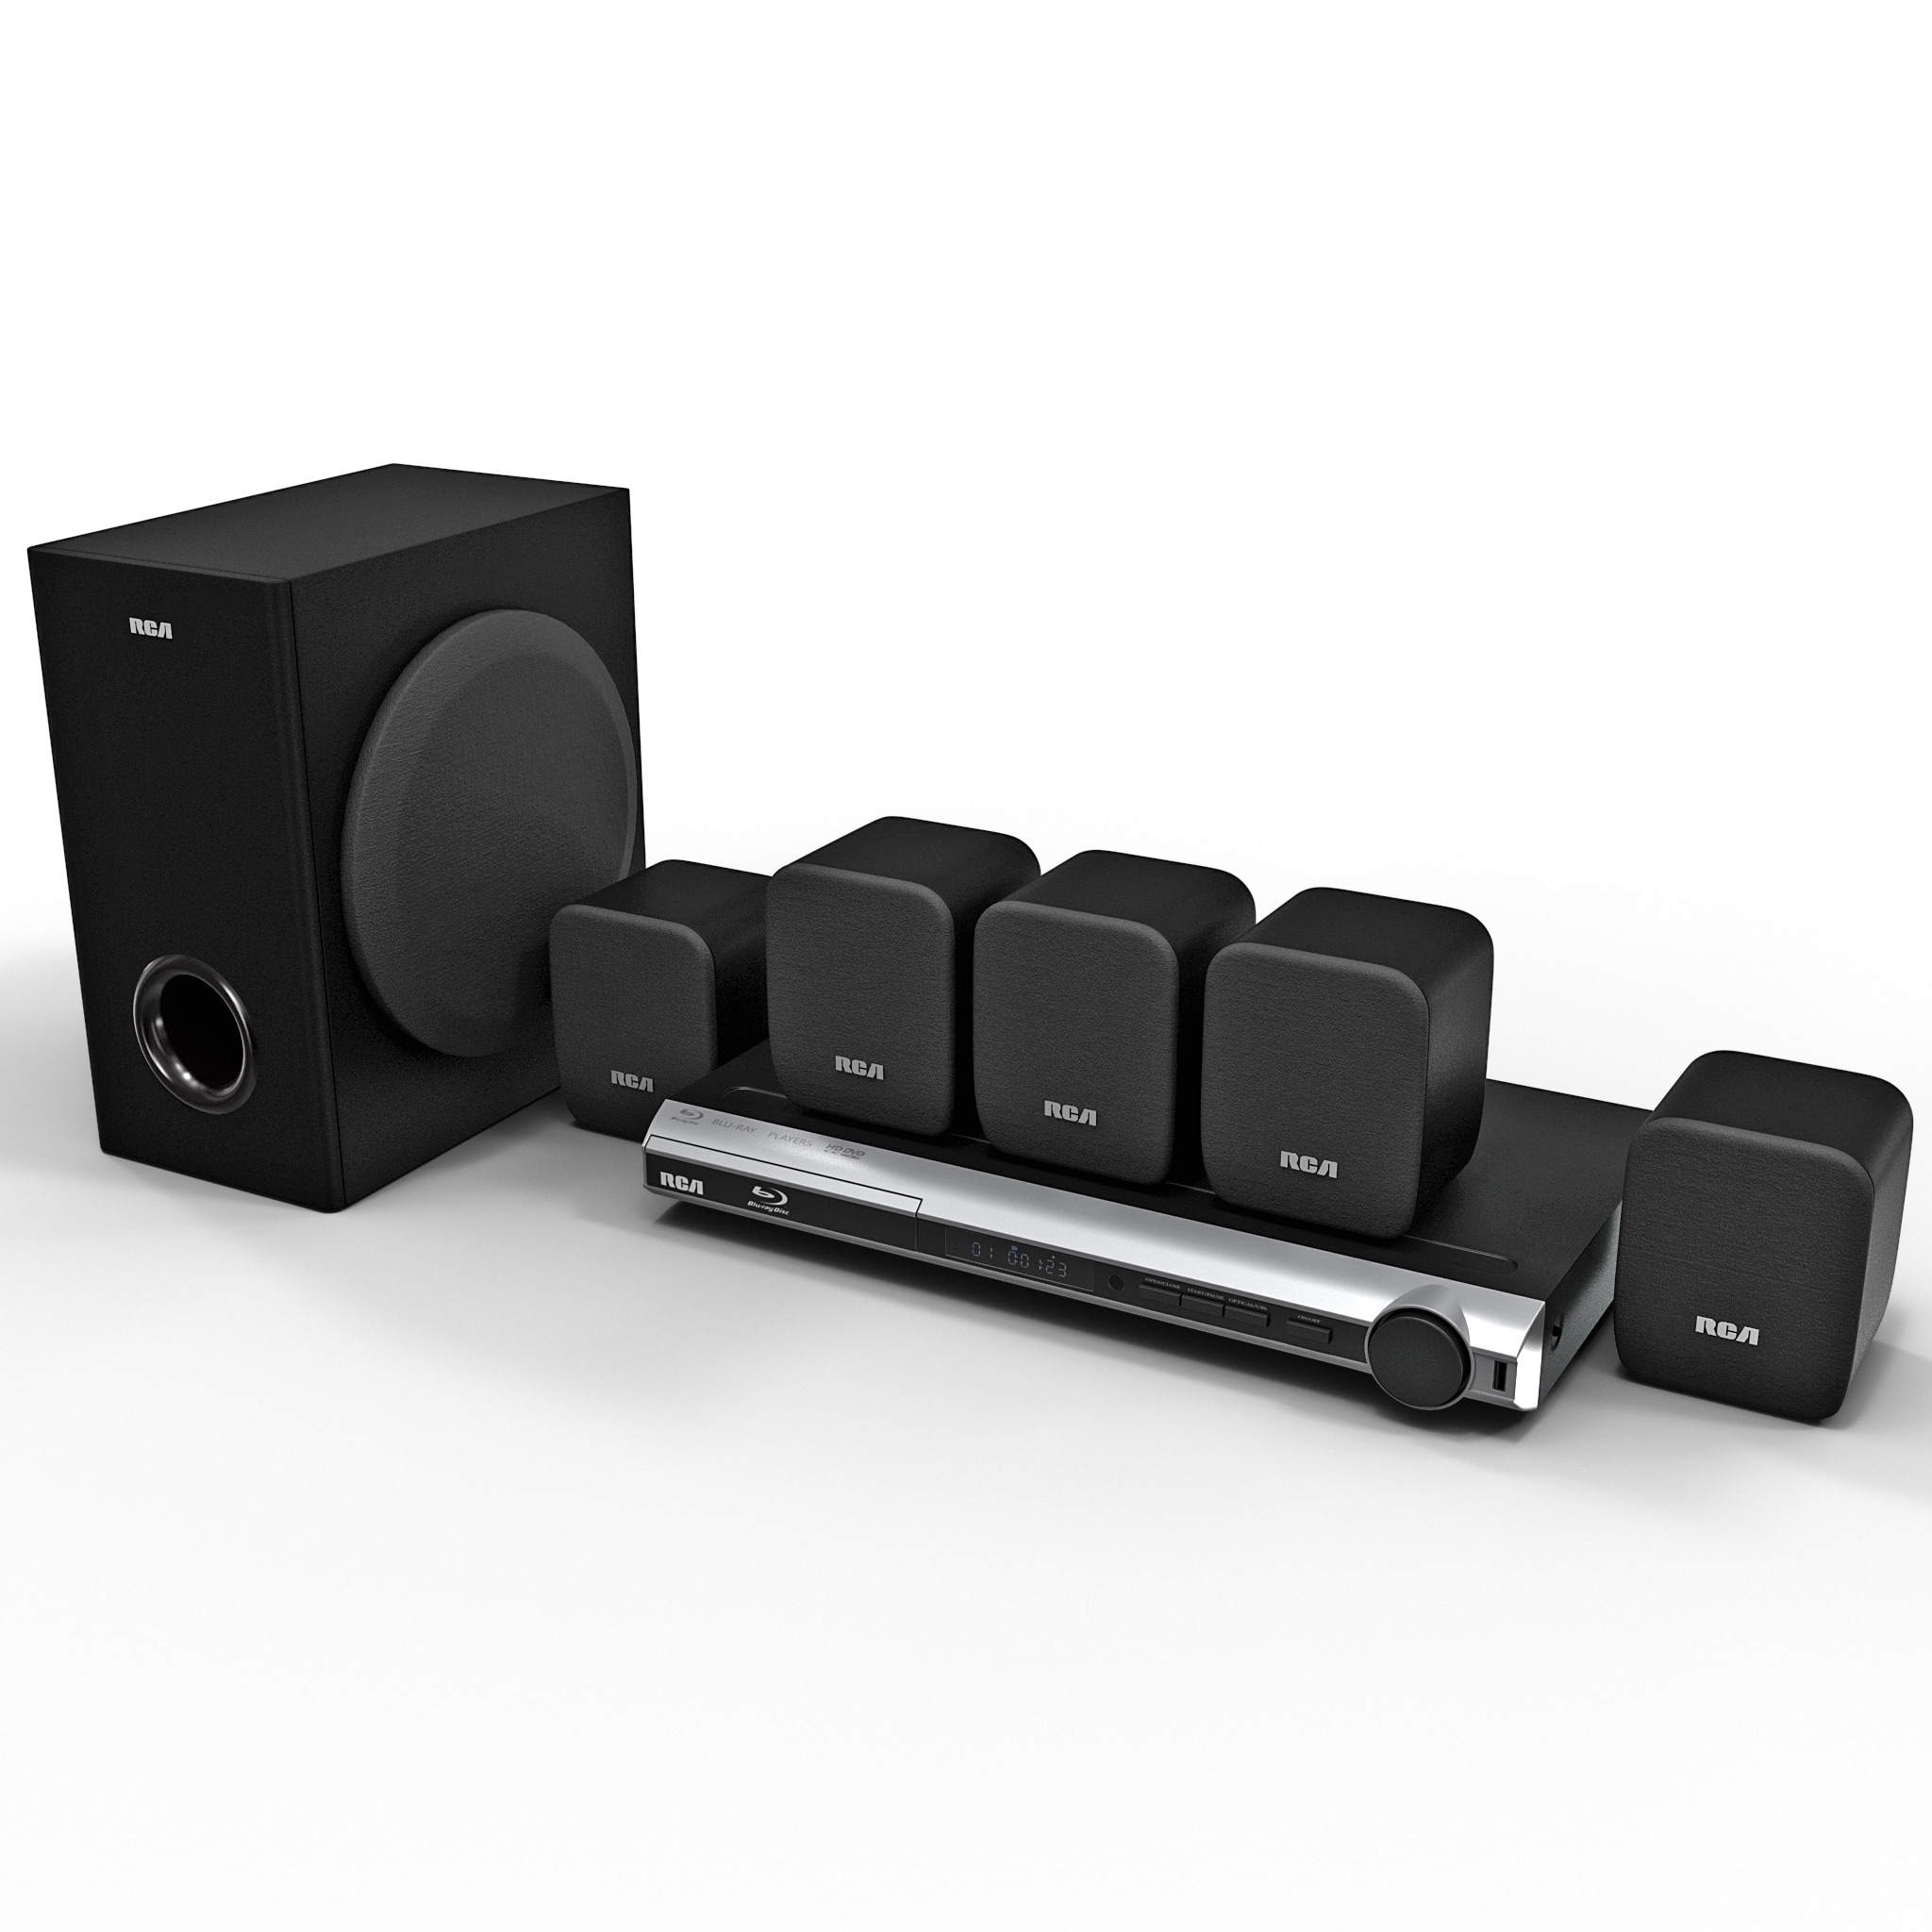 3d model of bluray home theater rca